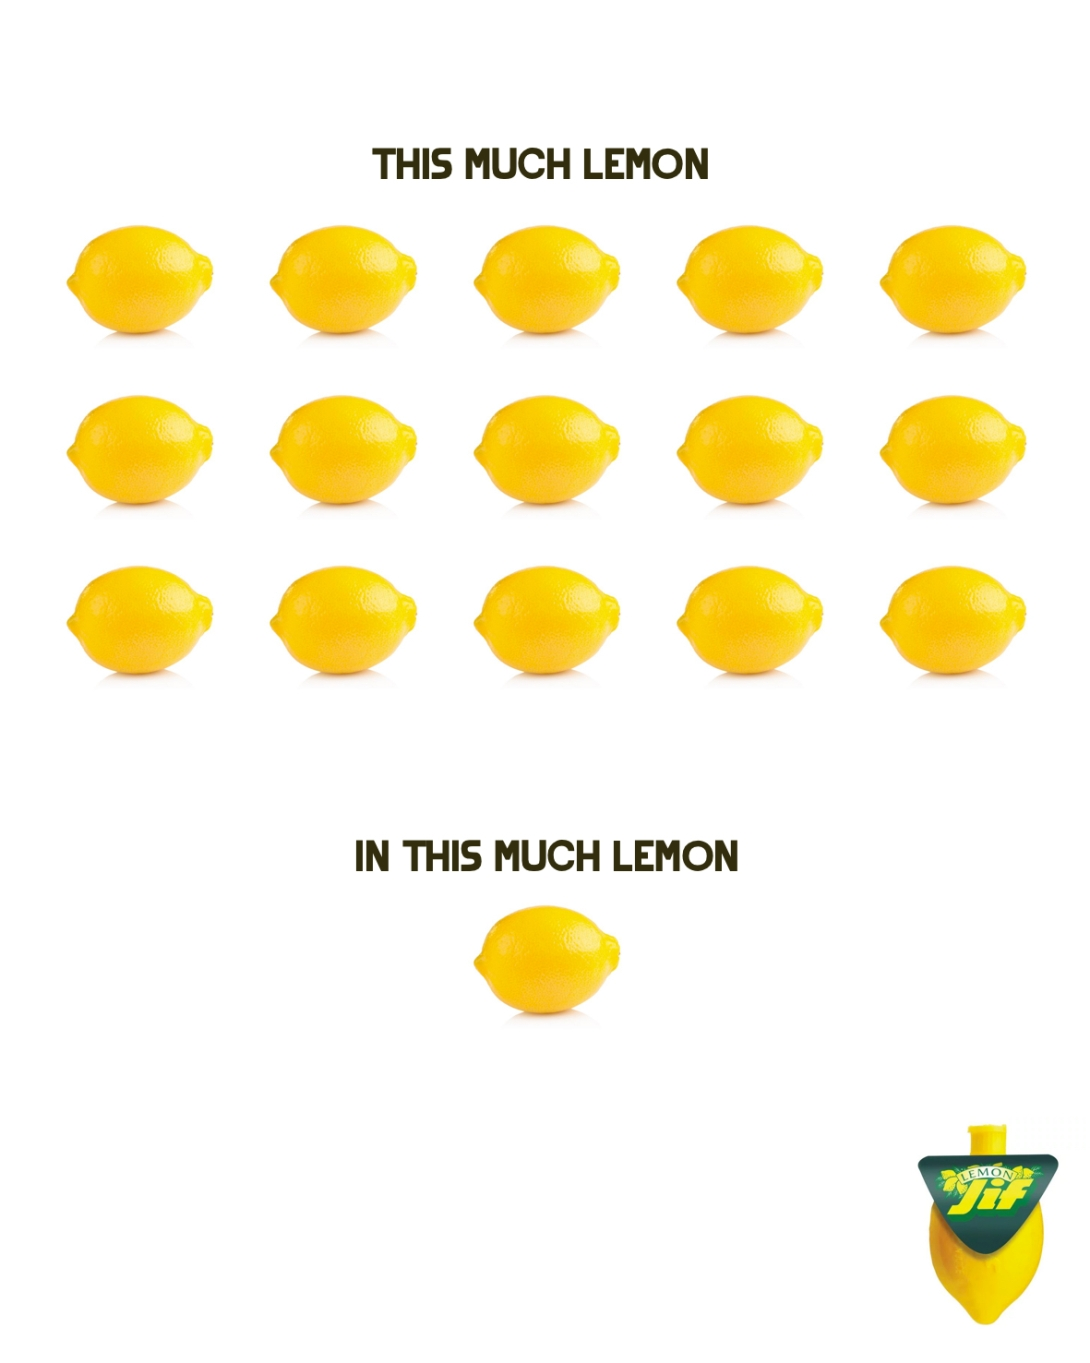 Quick print ad idea for Lemon JIF